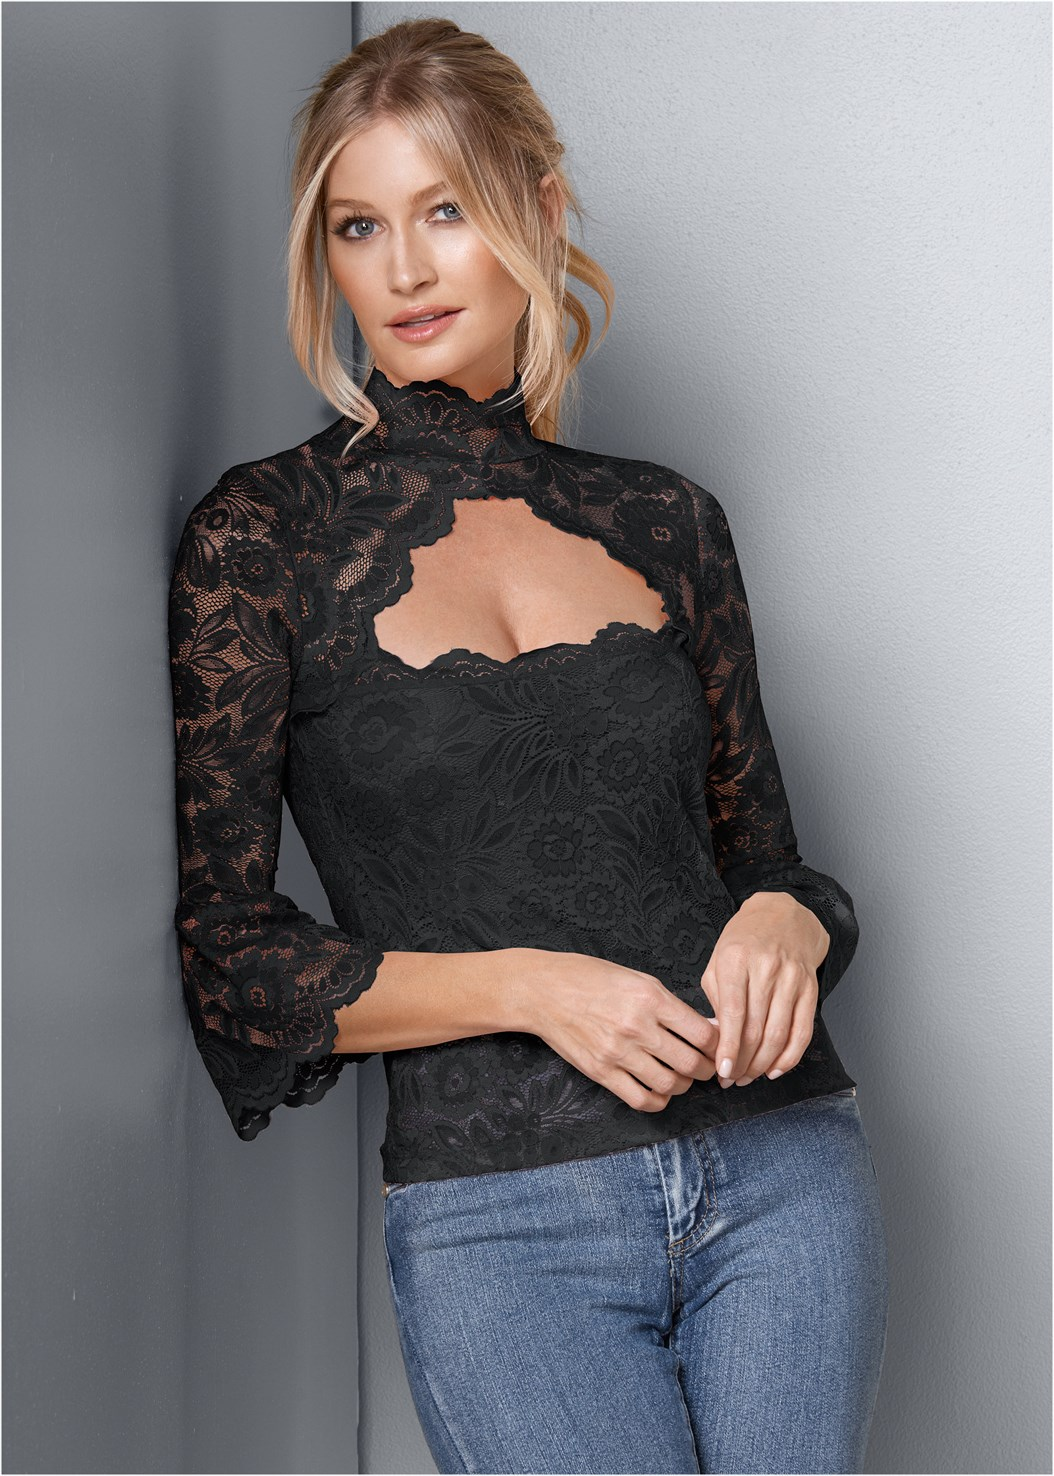 Lace Mock Neck Top,Mid Rise Color Skinny Jeans,High Heel Strappy Sandals